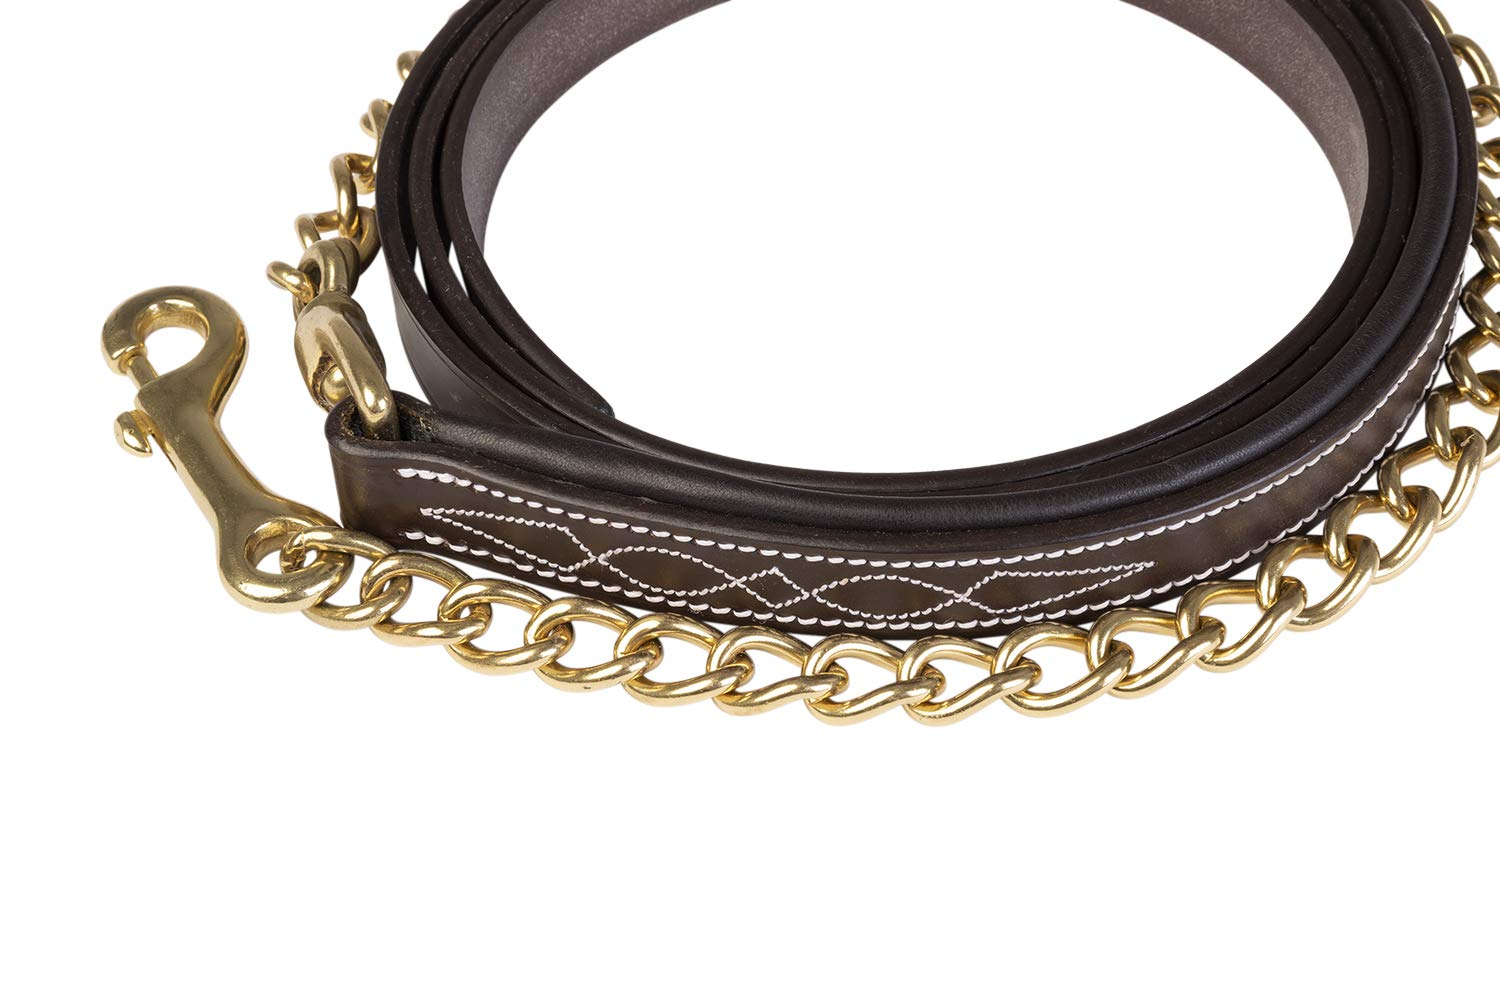 Huntley Equestrian Sedgwick Leather Lead with Chain